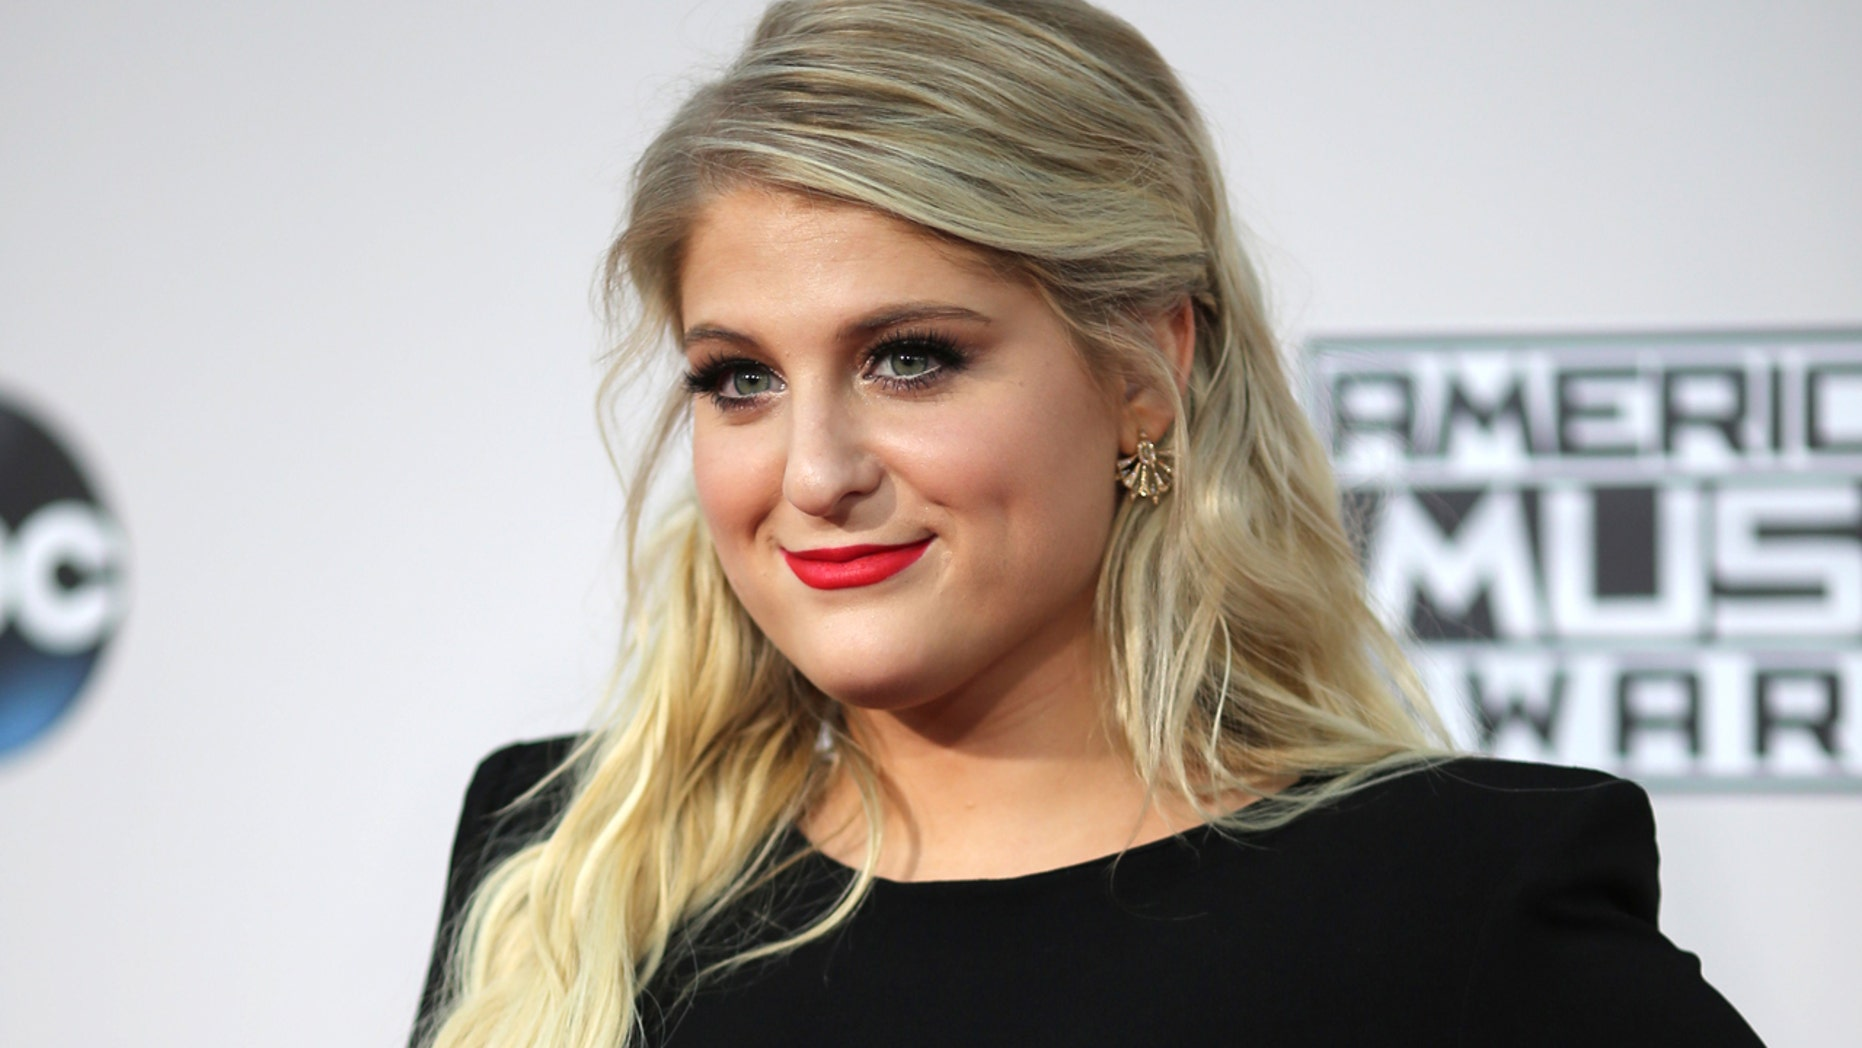 Singer Meghan Trainor arrives at the 2015 American Music Awards in Los Angeles, California November 22, 2015.